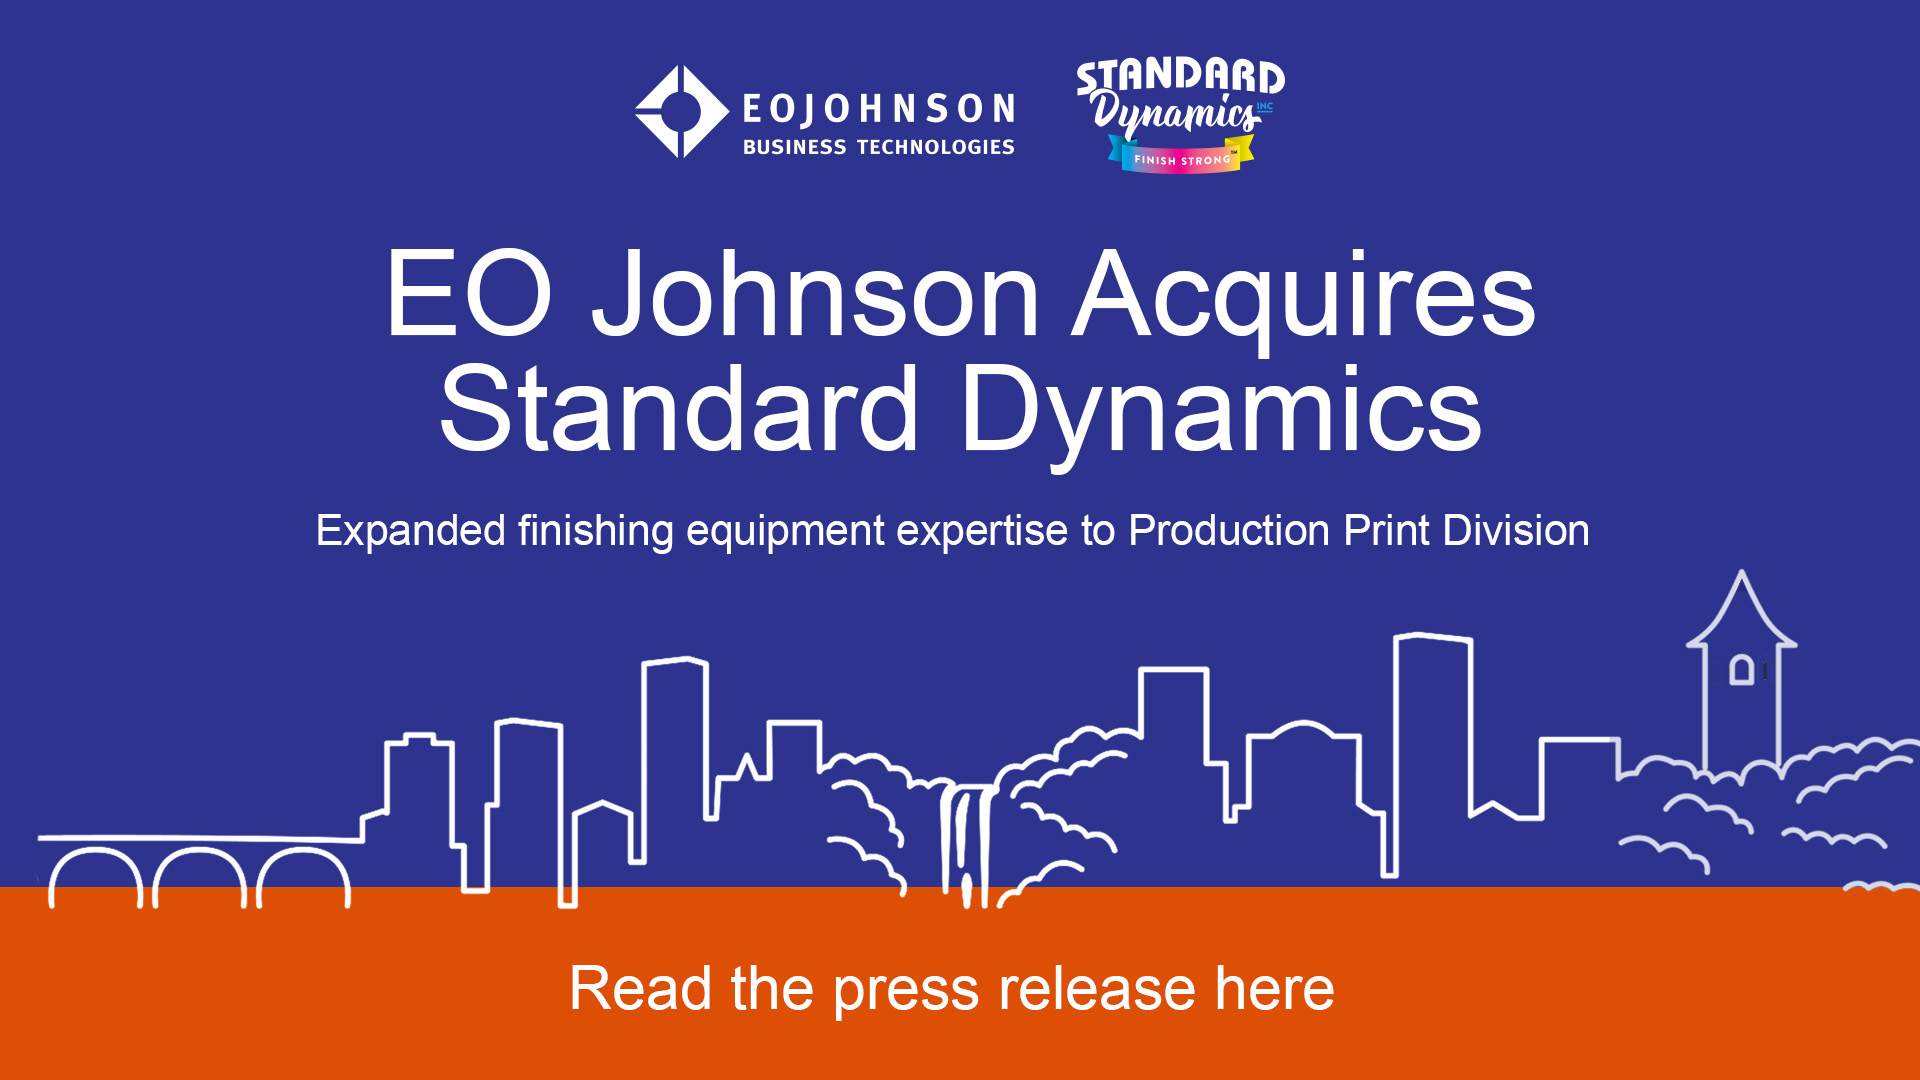 EO Johnson acquires Standard Dynamics